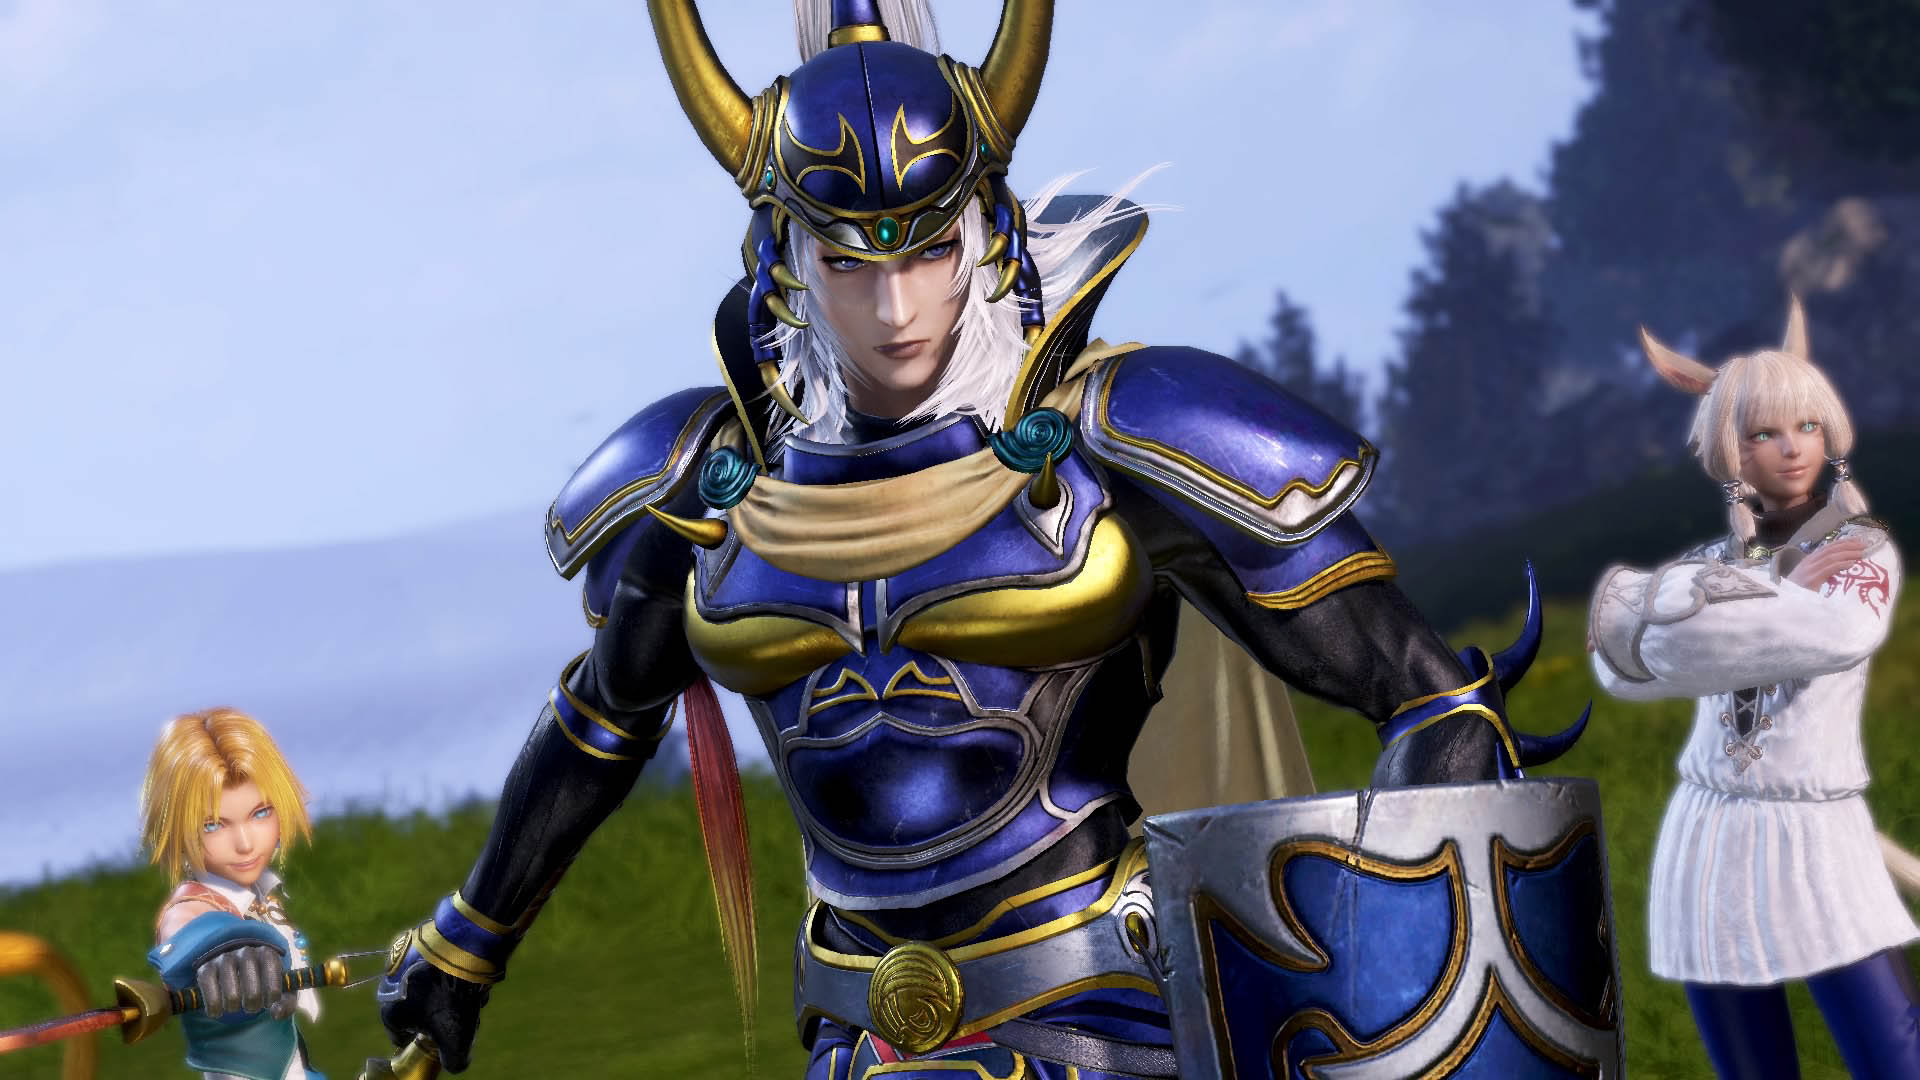 Dissidia Final Fantasy Nt Bringing Changes To The Warrior Of Light